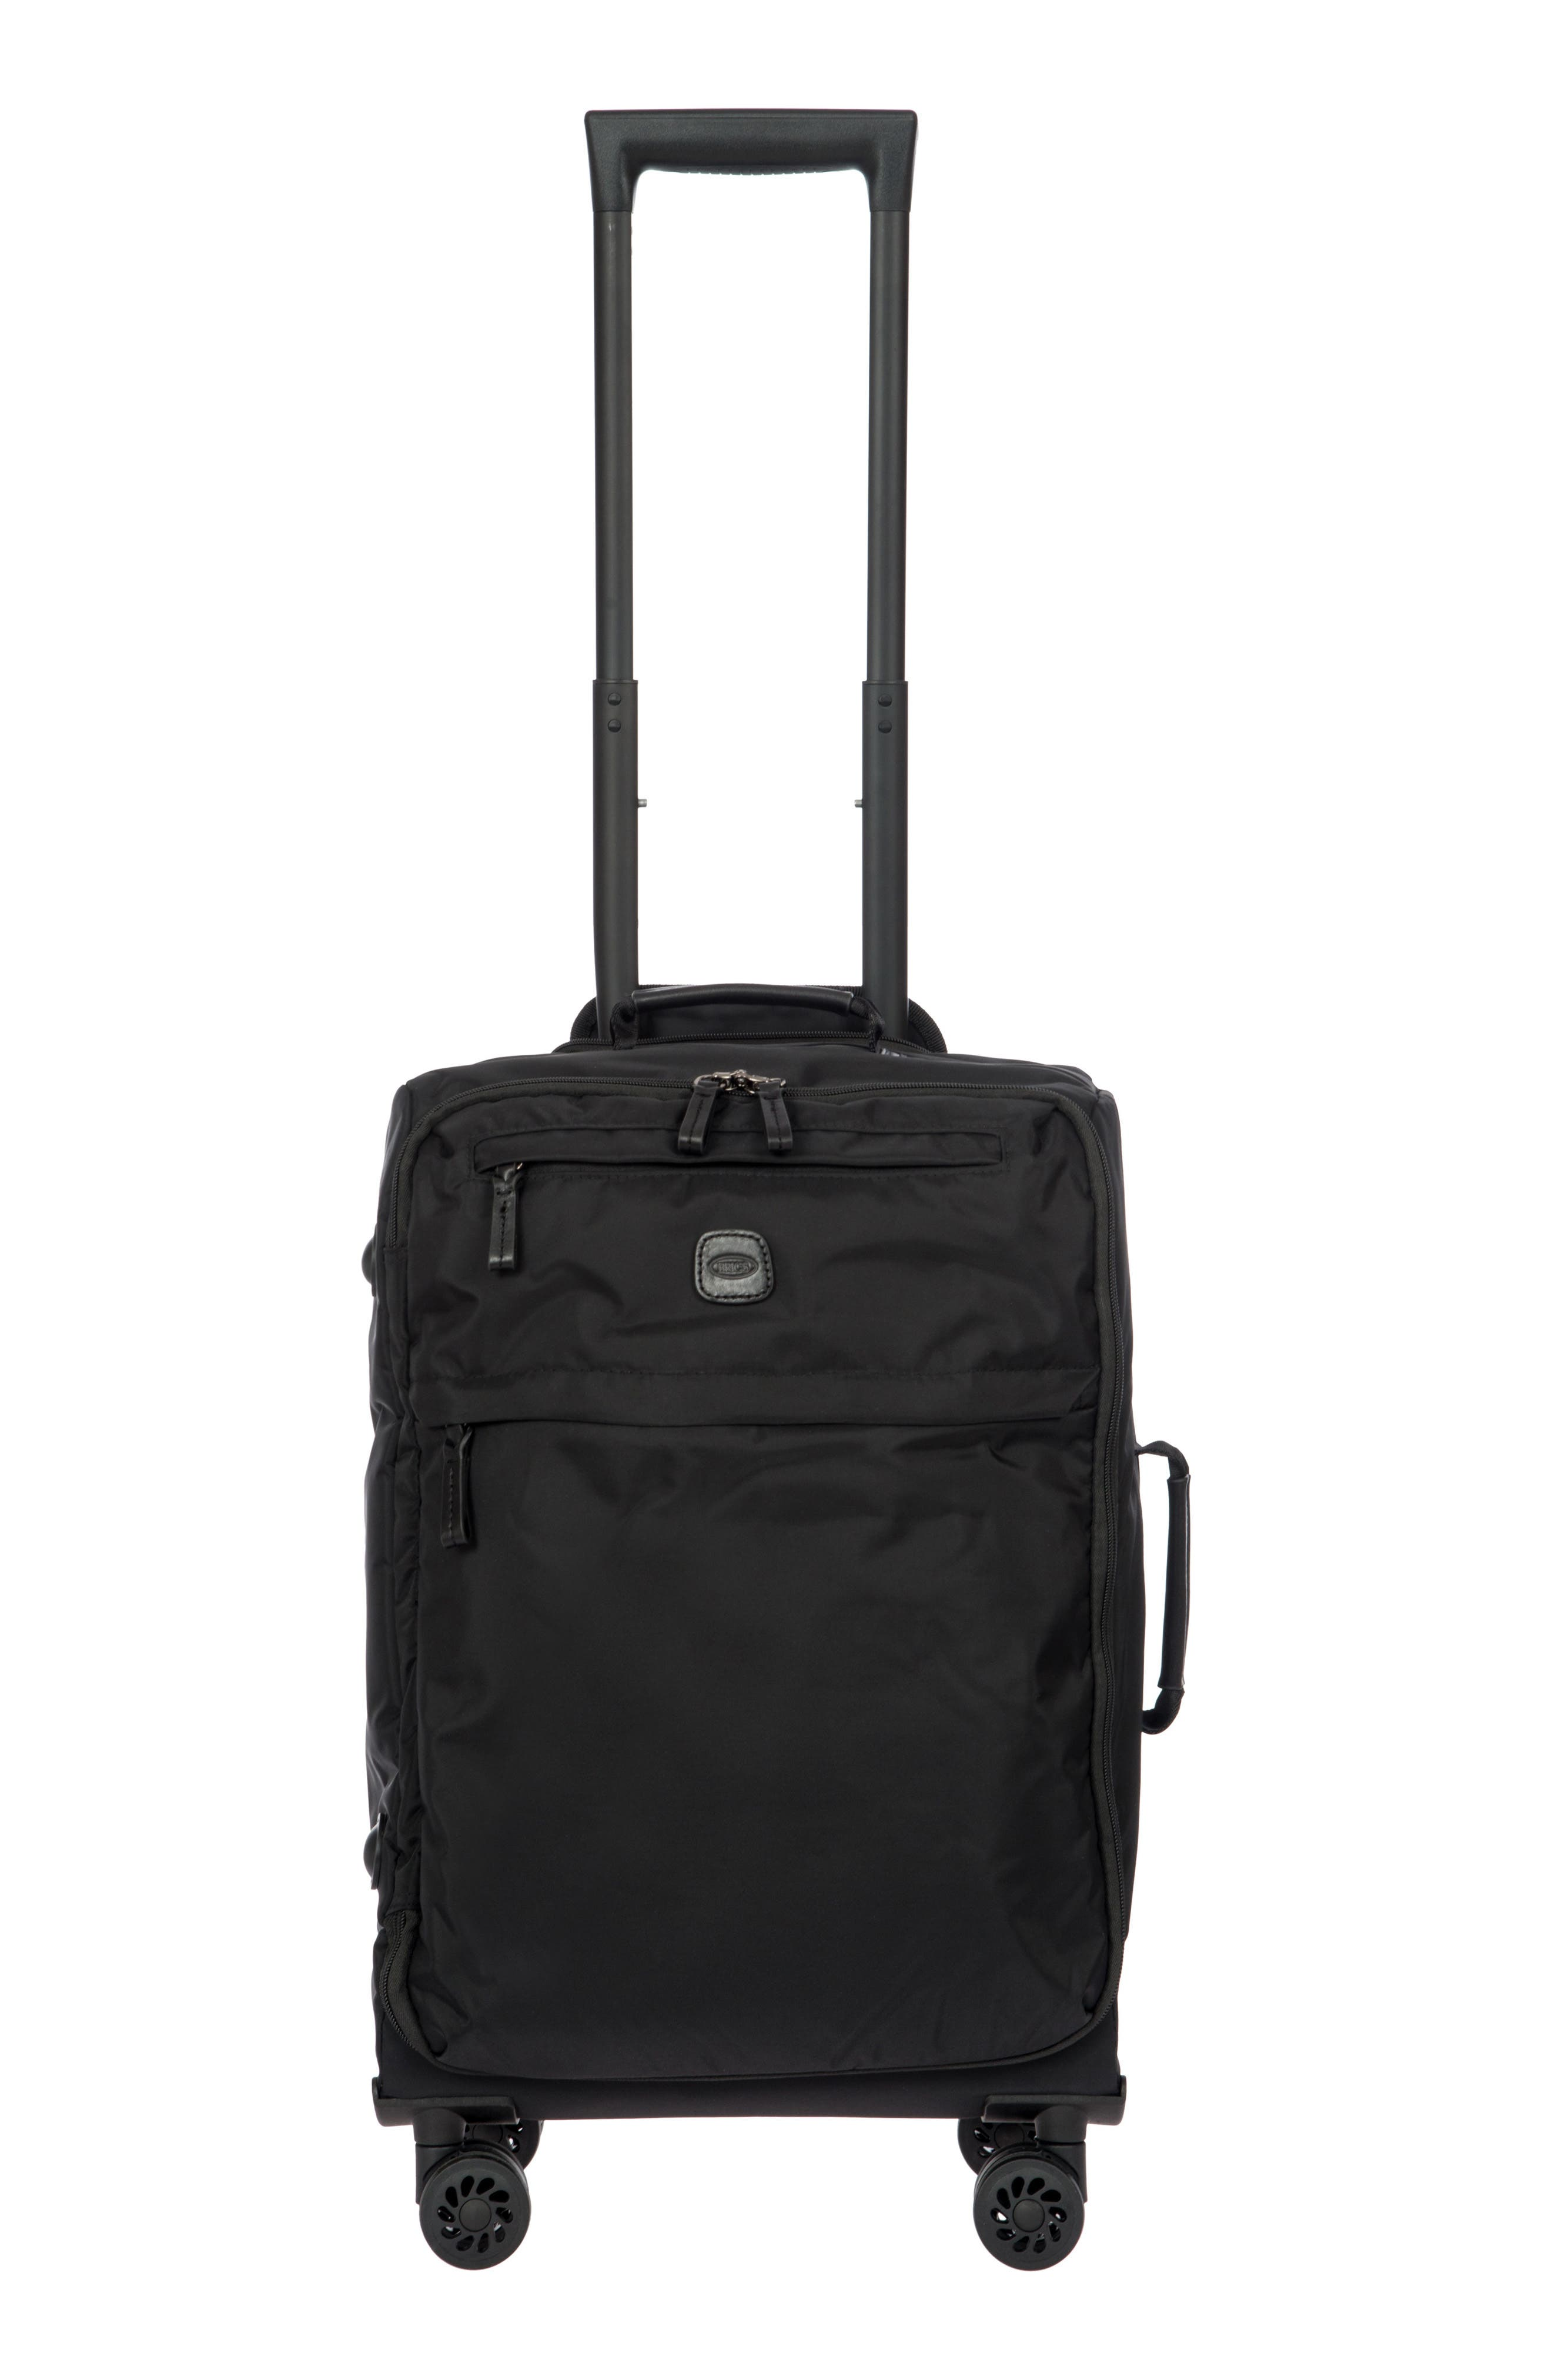 X-Bag 21-Inch Spinner Carry-On,                         Main,                         color, BLACK/ BLACK